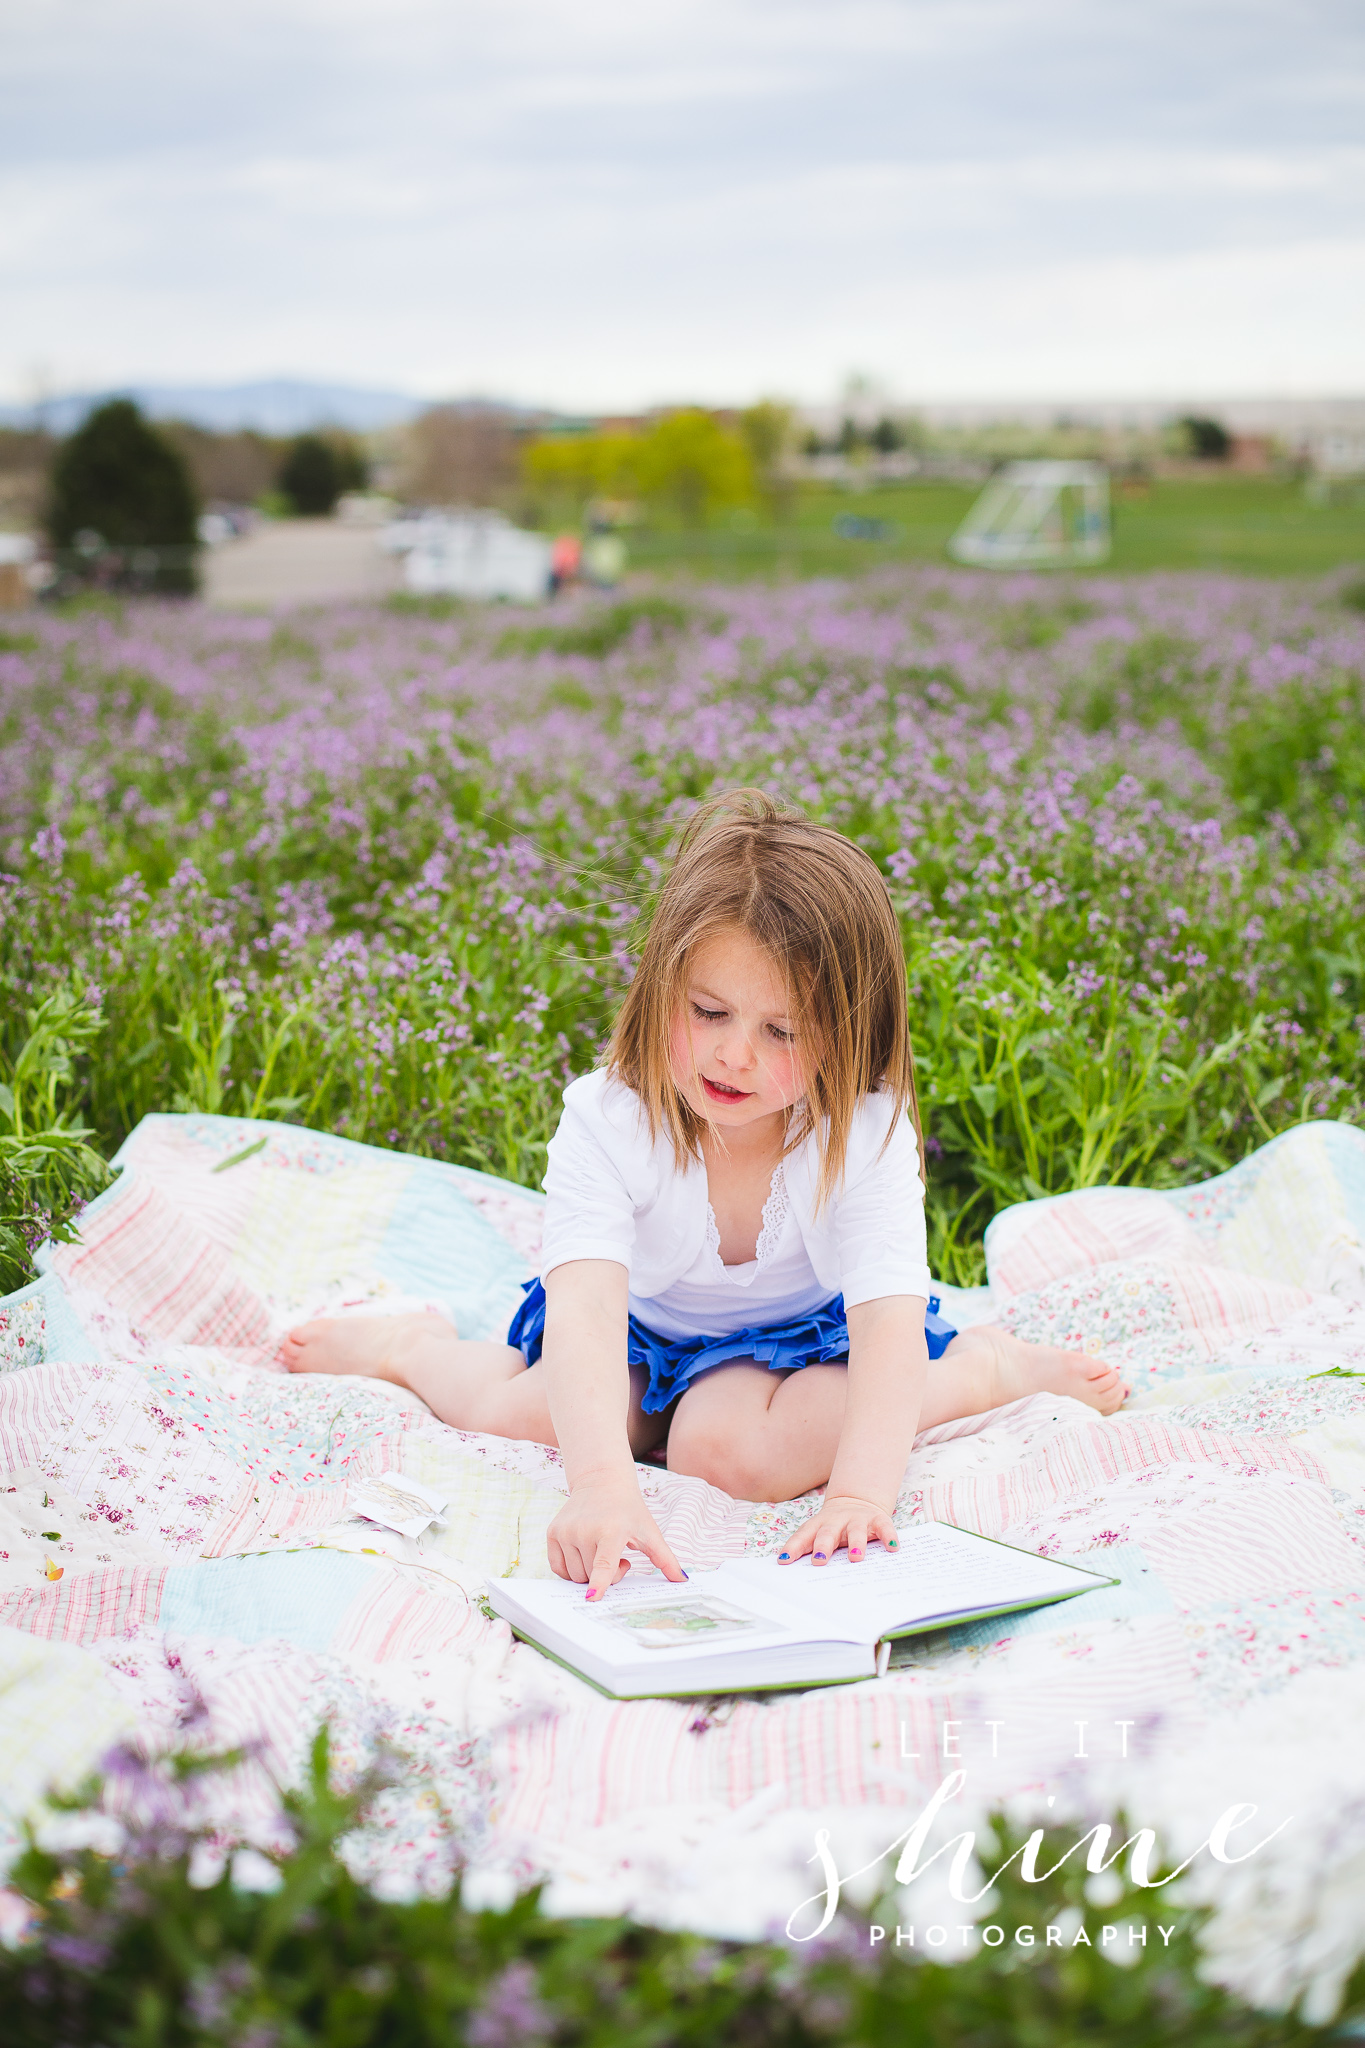 Mommy and Me Boise Lifestyle Photography-5210.jpg